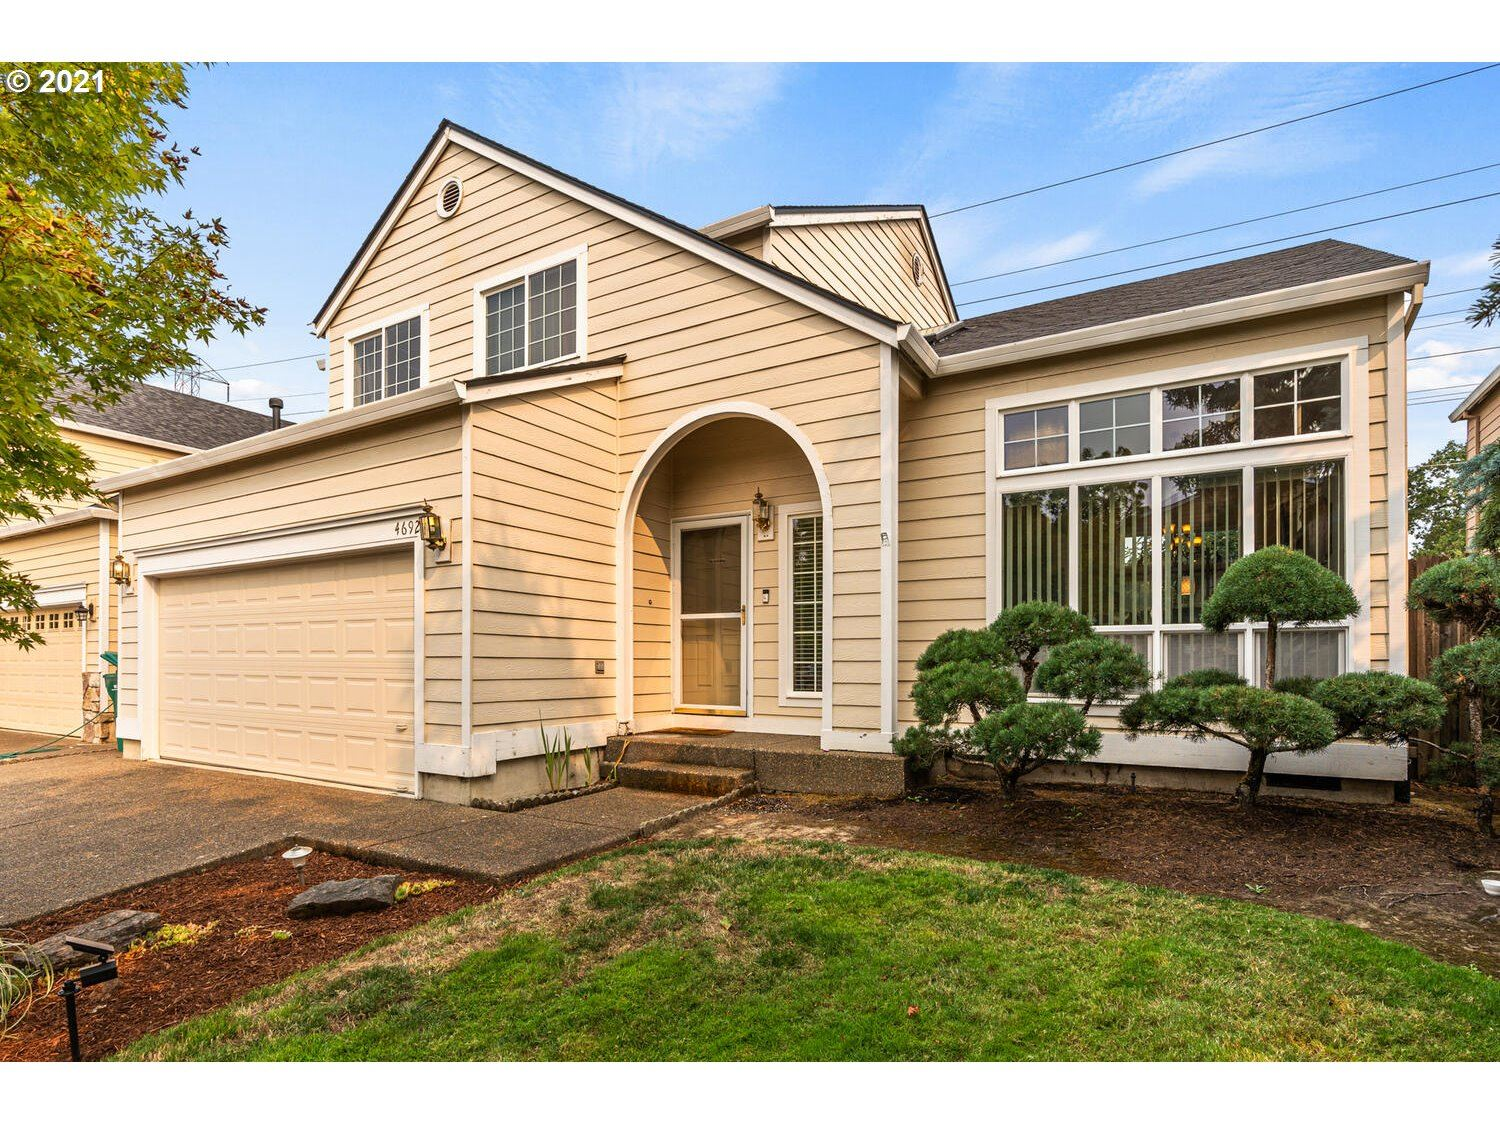 4692 NW 166TH AVE, Portland, OR 97229 - MLS#: 21660686